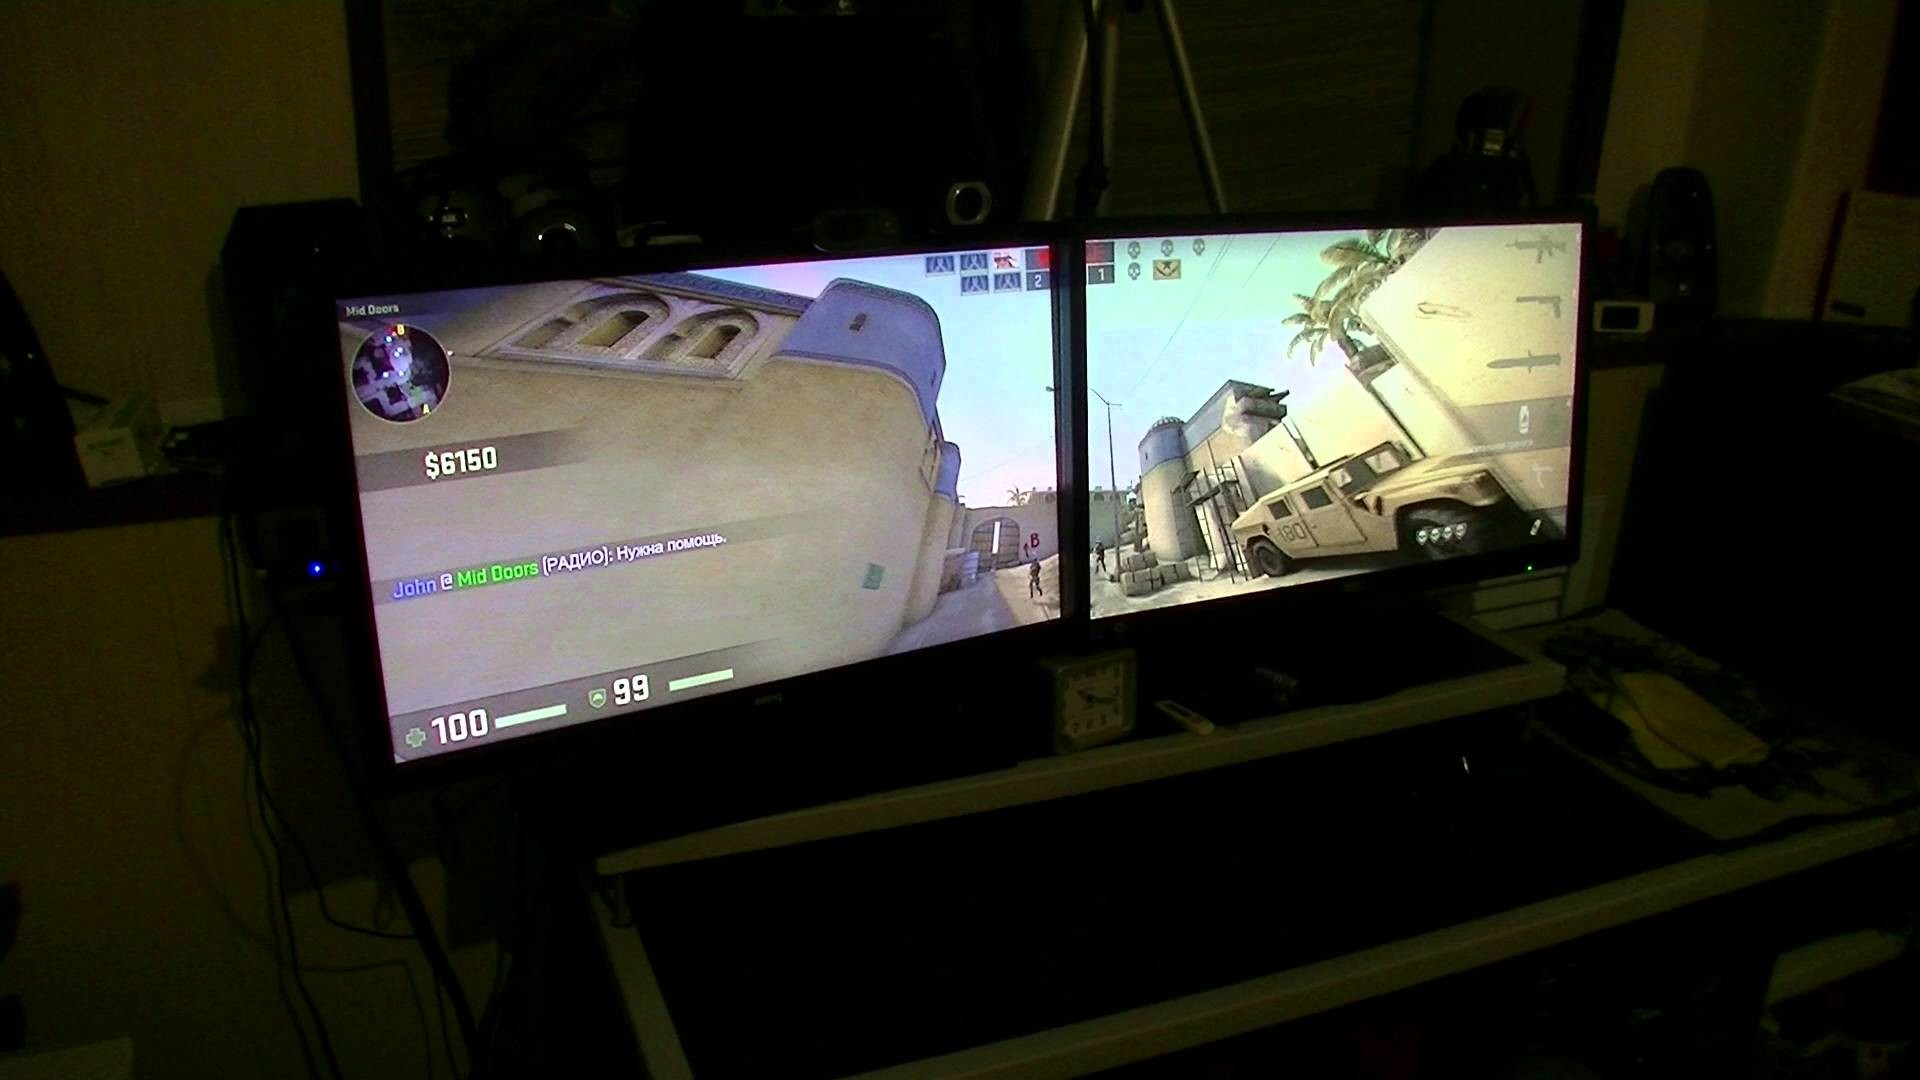 Nvidia Surround 2 monitor Test: FarCry 3 and CS:GO